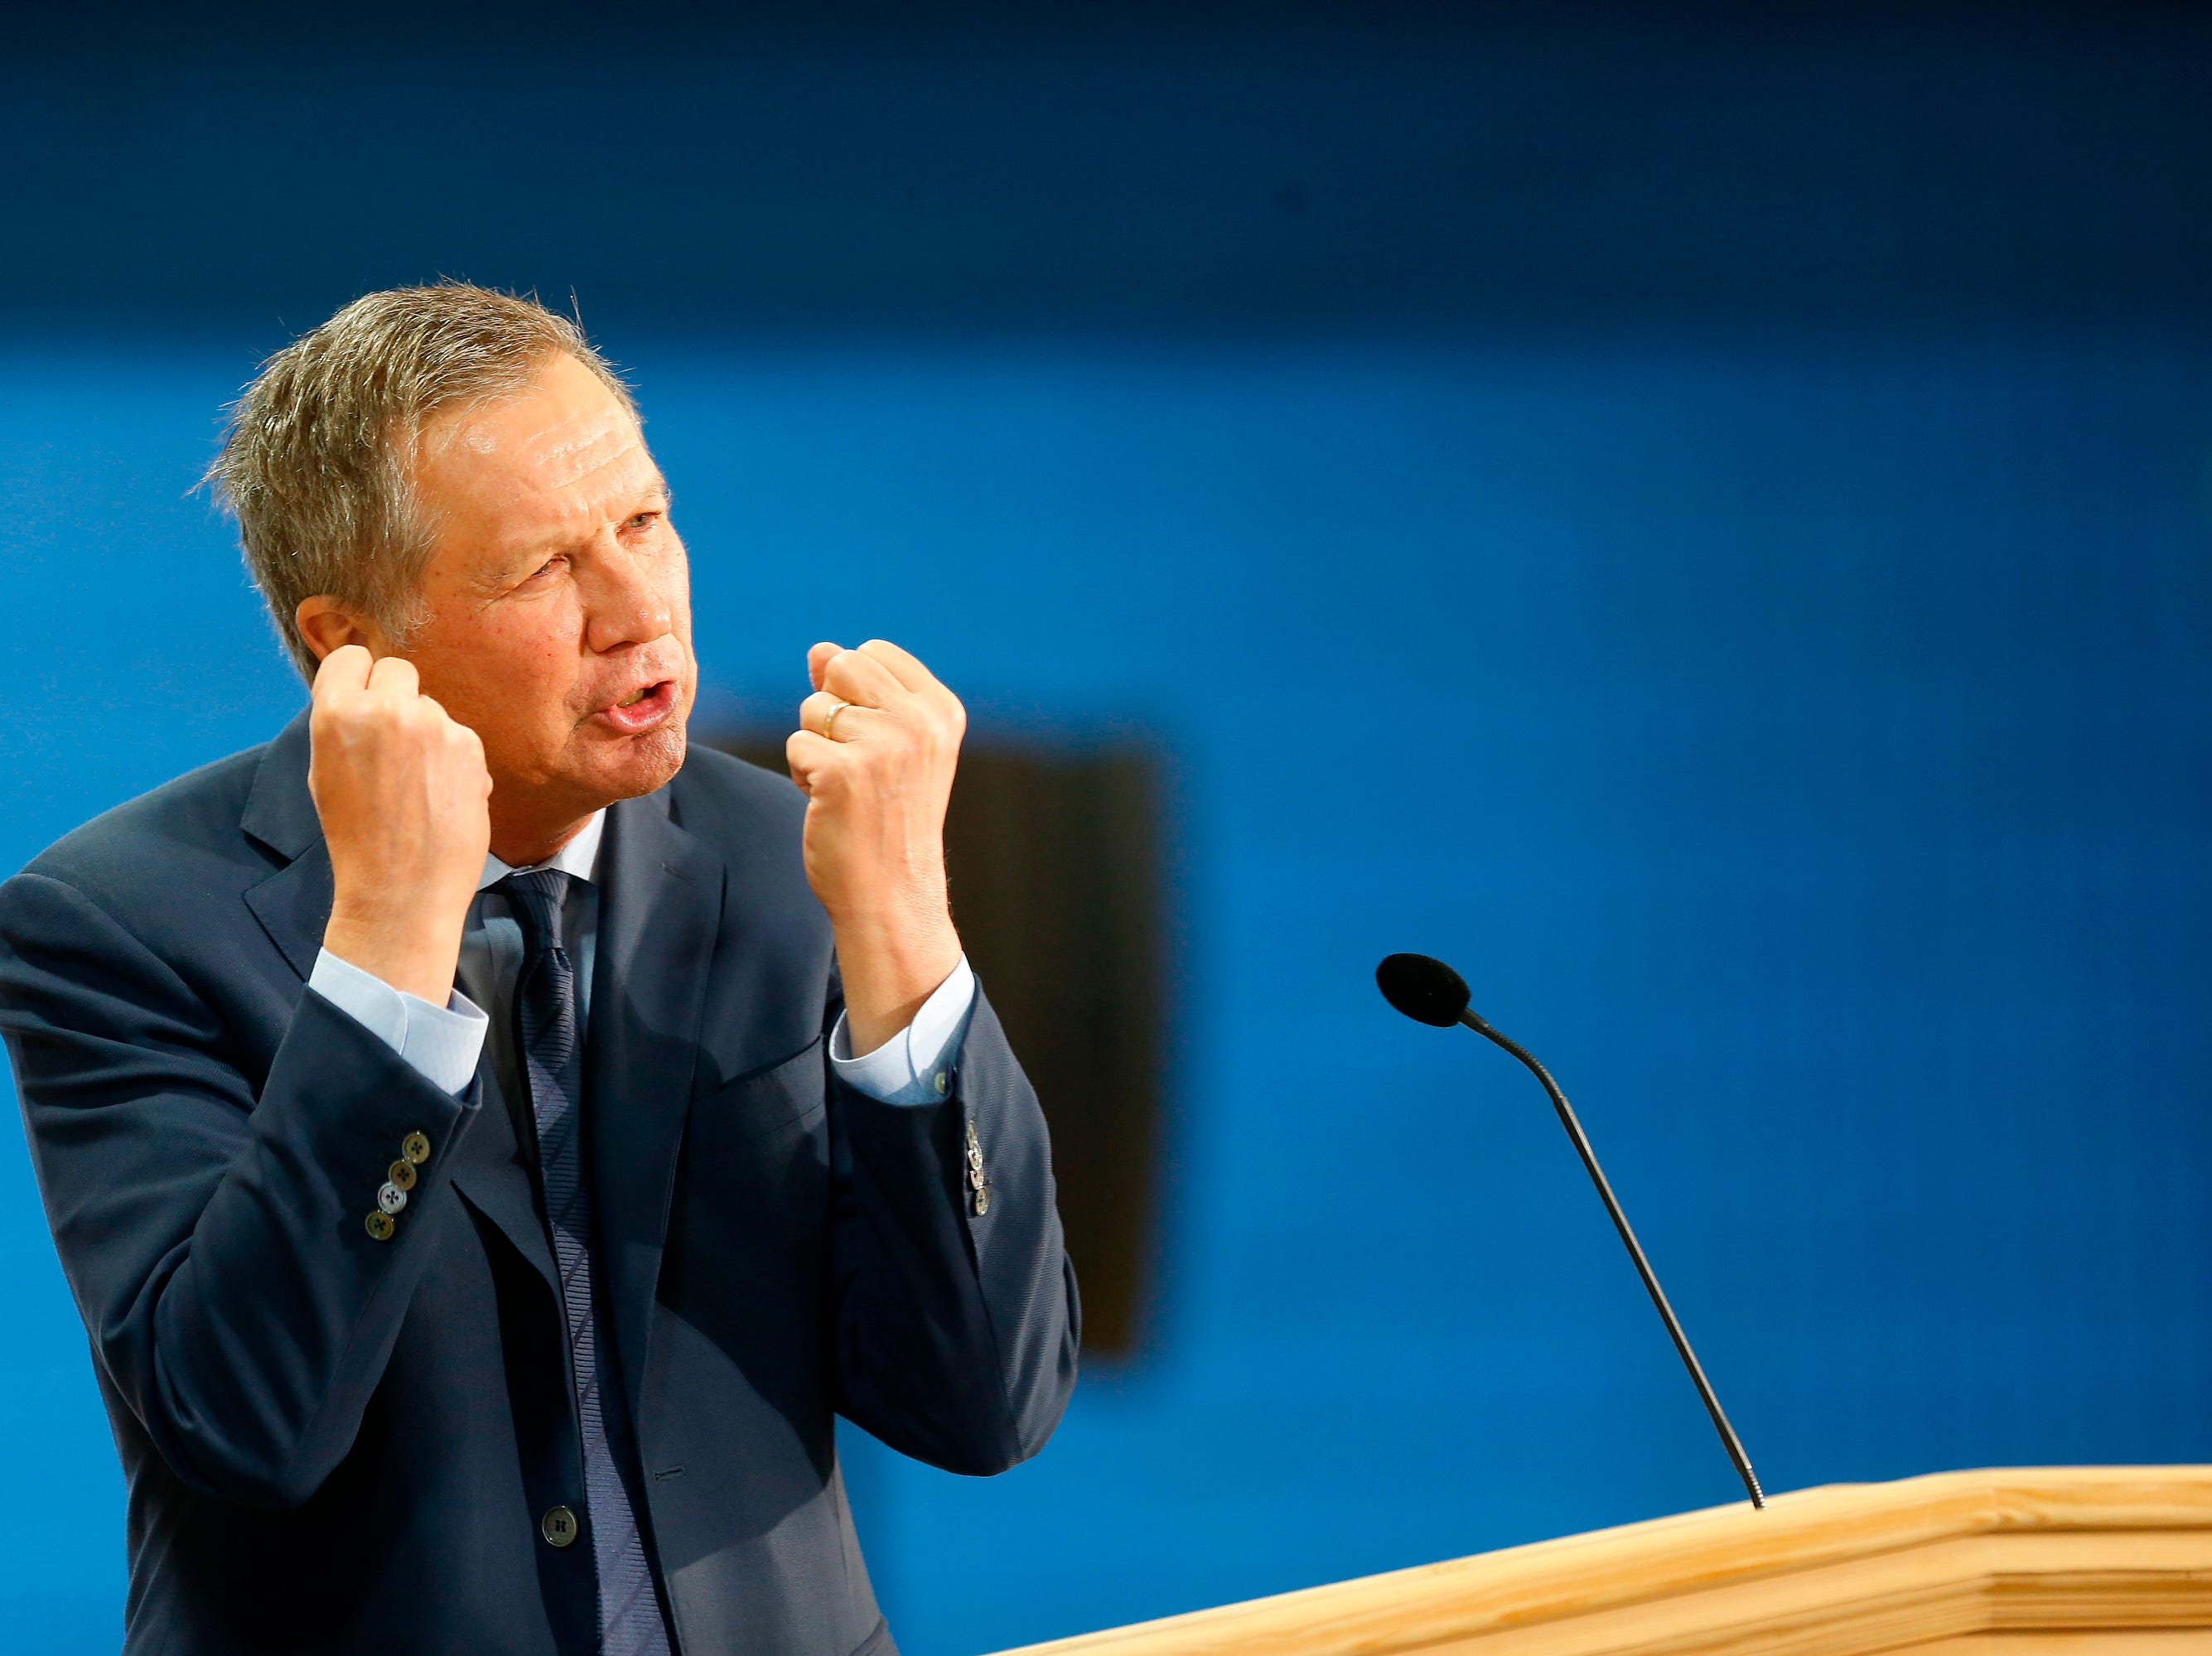 Kasich: Forget the Green New Deal. We need climate solutions from free-market moderates.